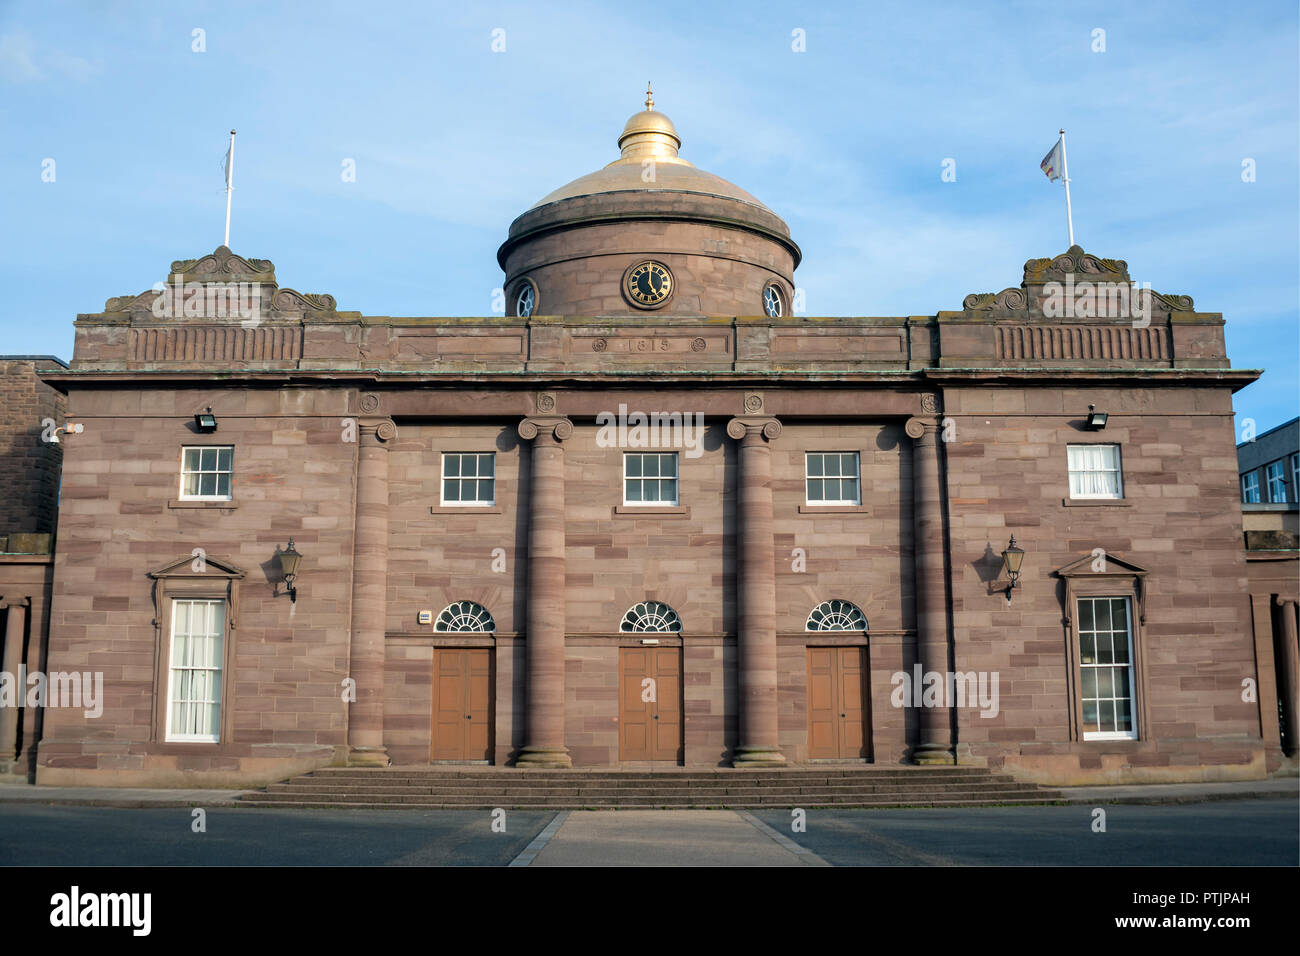 Montrose Academy, Secondary school in Montrose designed in 1815 and built in 1820 with a golden roof - Stock Image